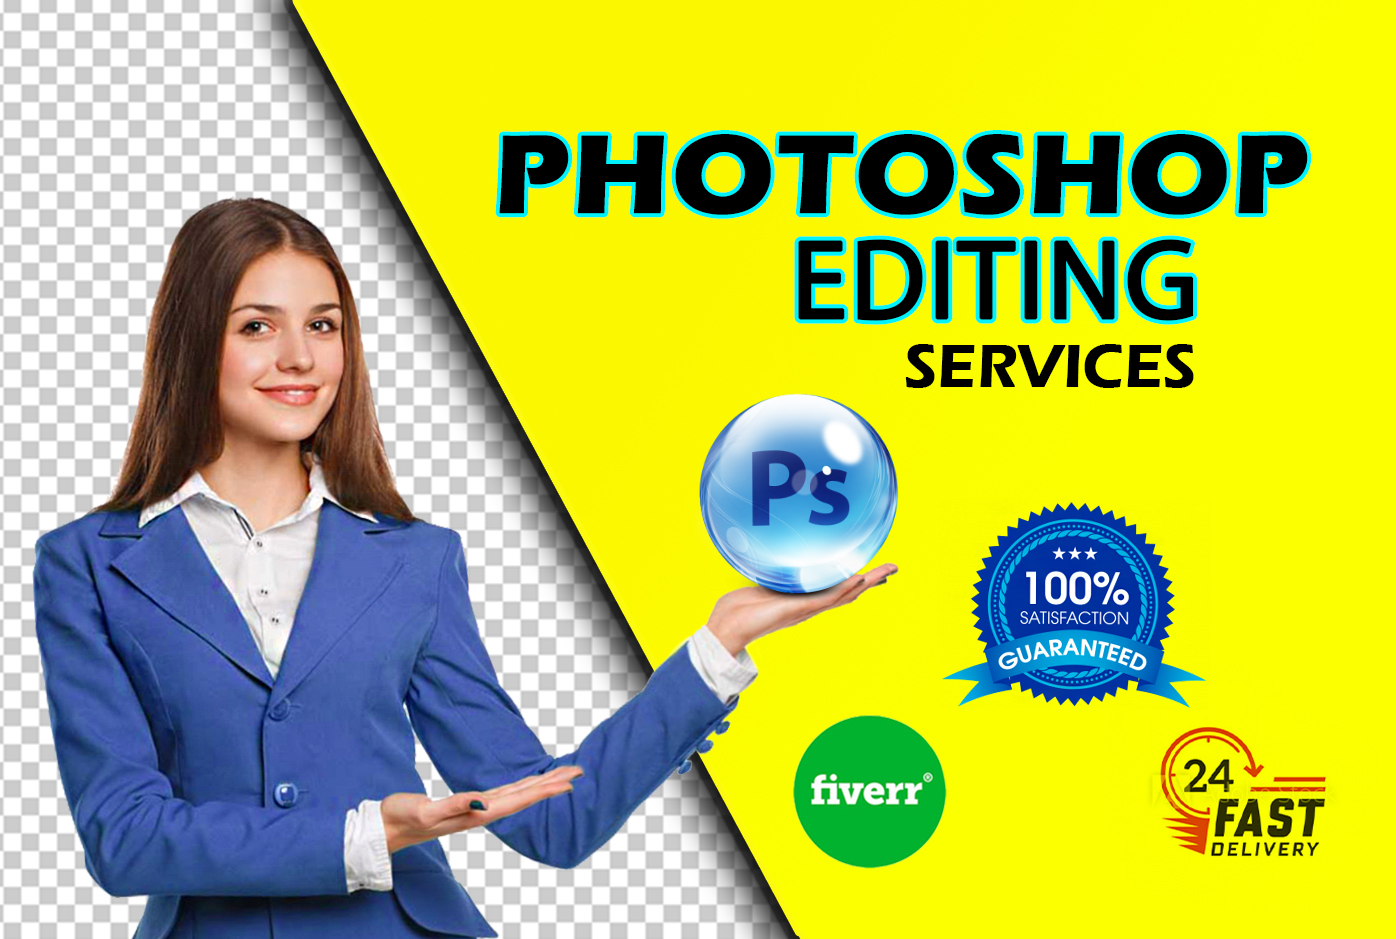 I will do professional Photoshop and Editing background remove from images